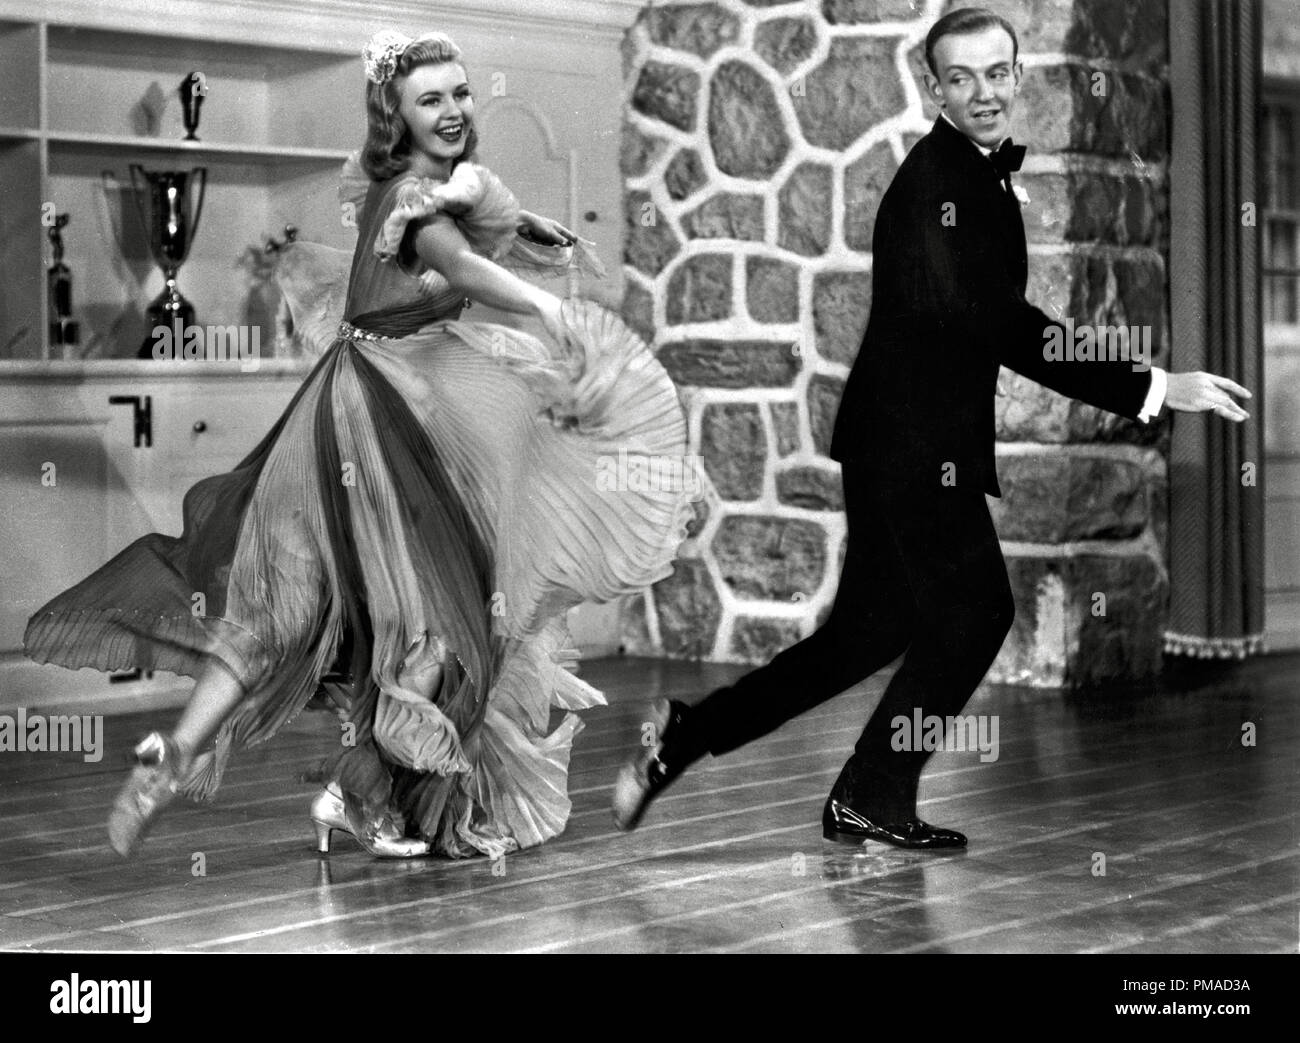 Fred Astaire Ginger Rogers Carefree 1938 Rko File Reference 32368 605tha Stock Photo Alamy